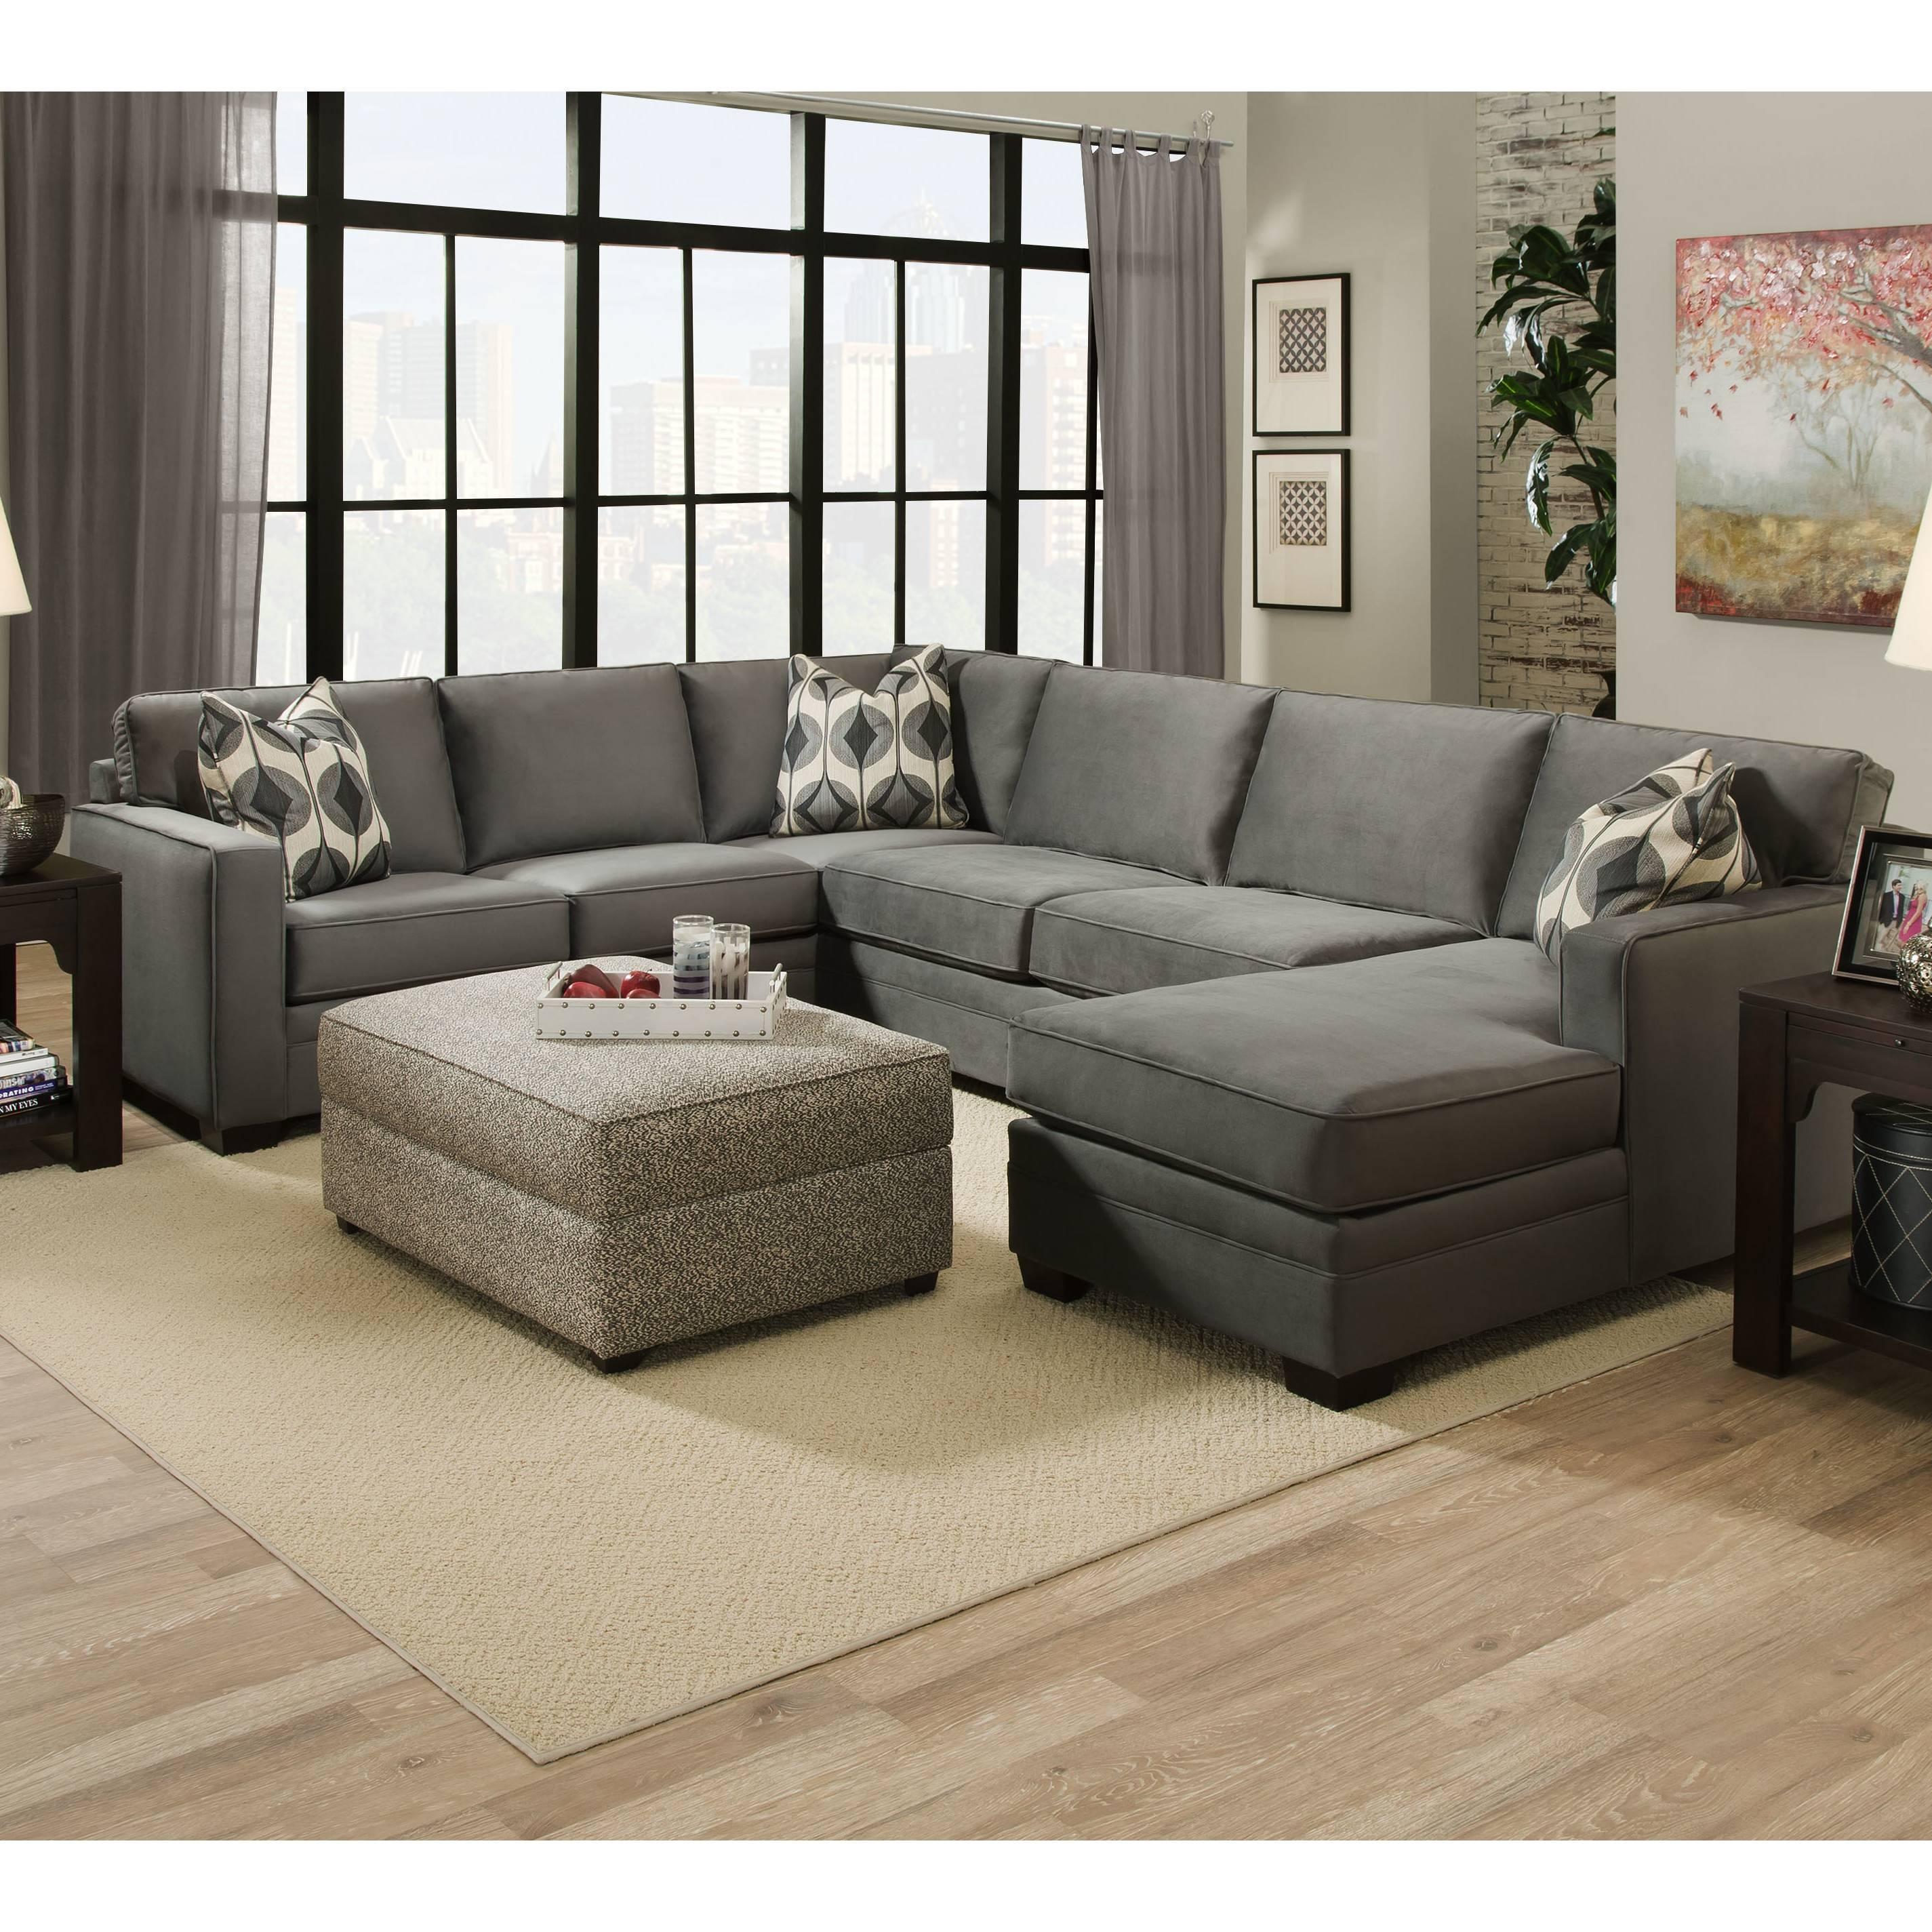 American Made Sectional Sofas Luxury Costco Leather Sectional Sofa